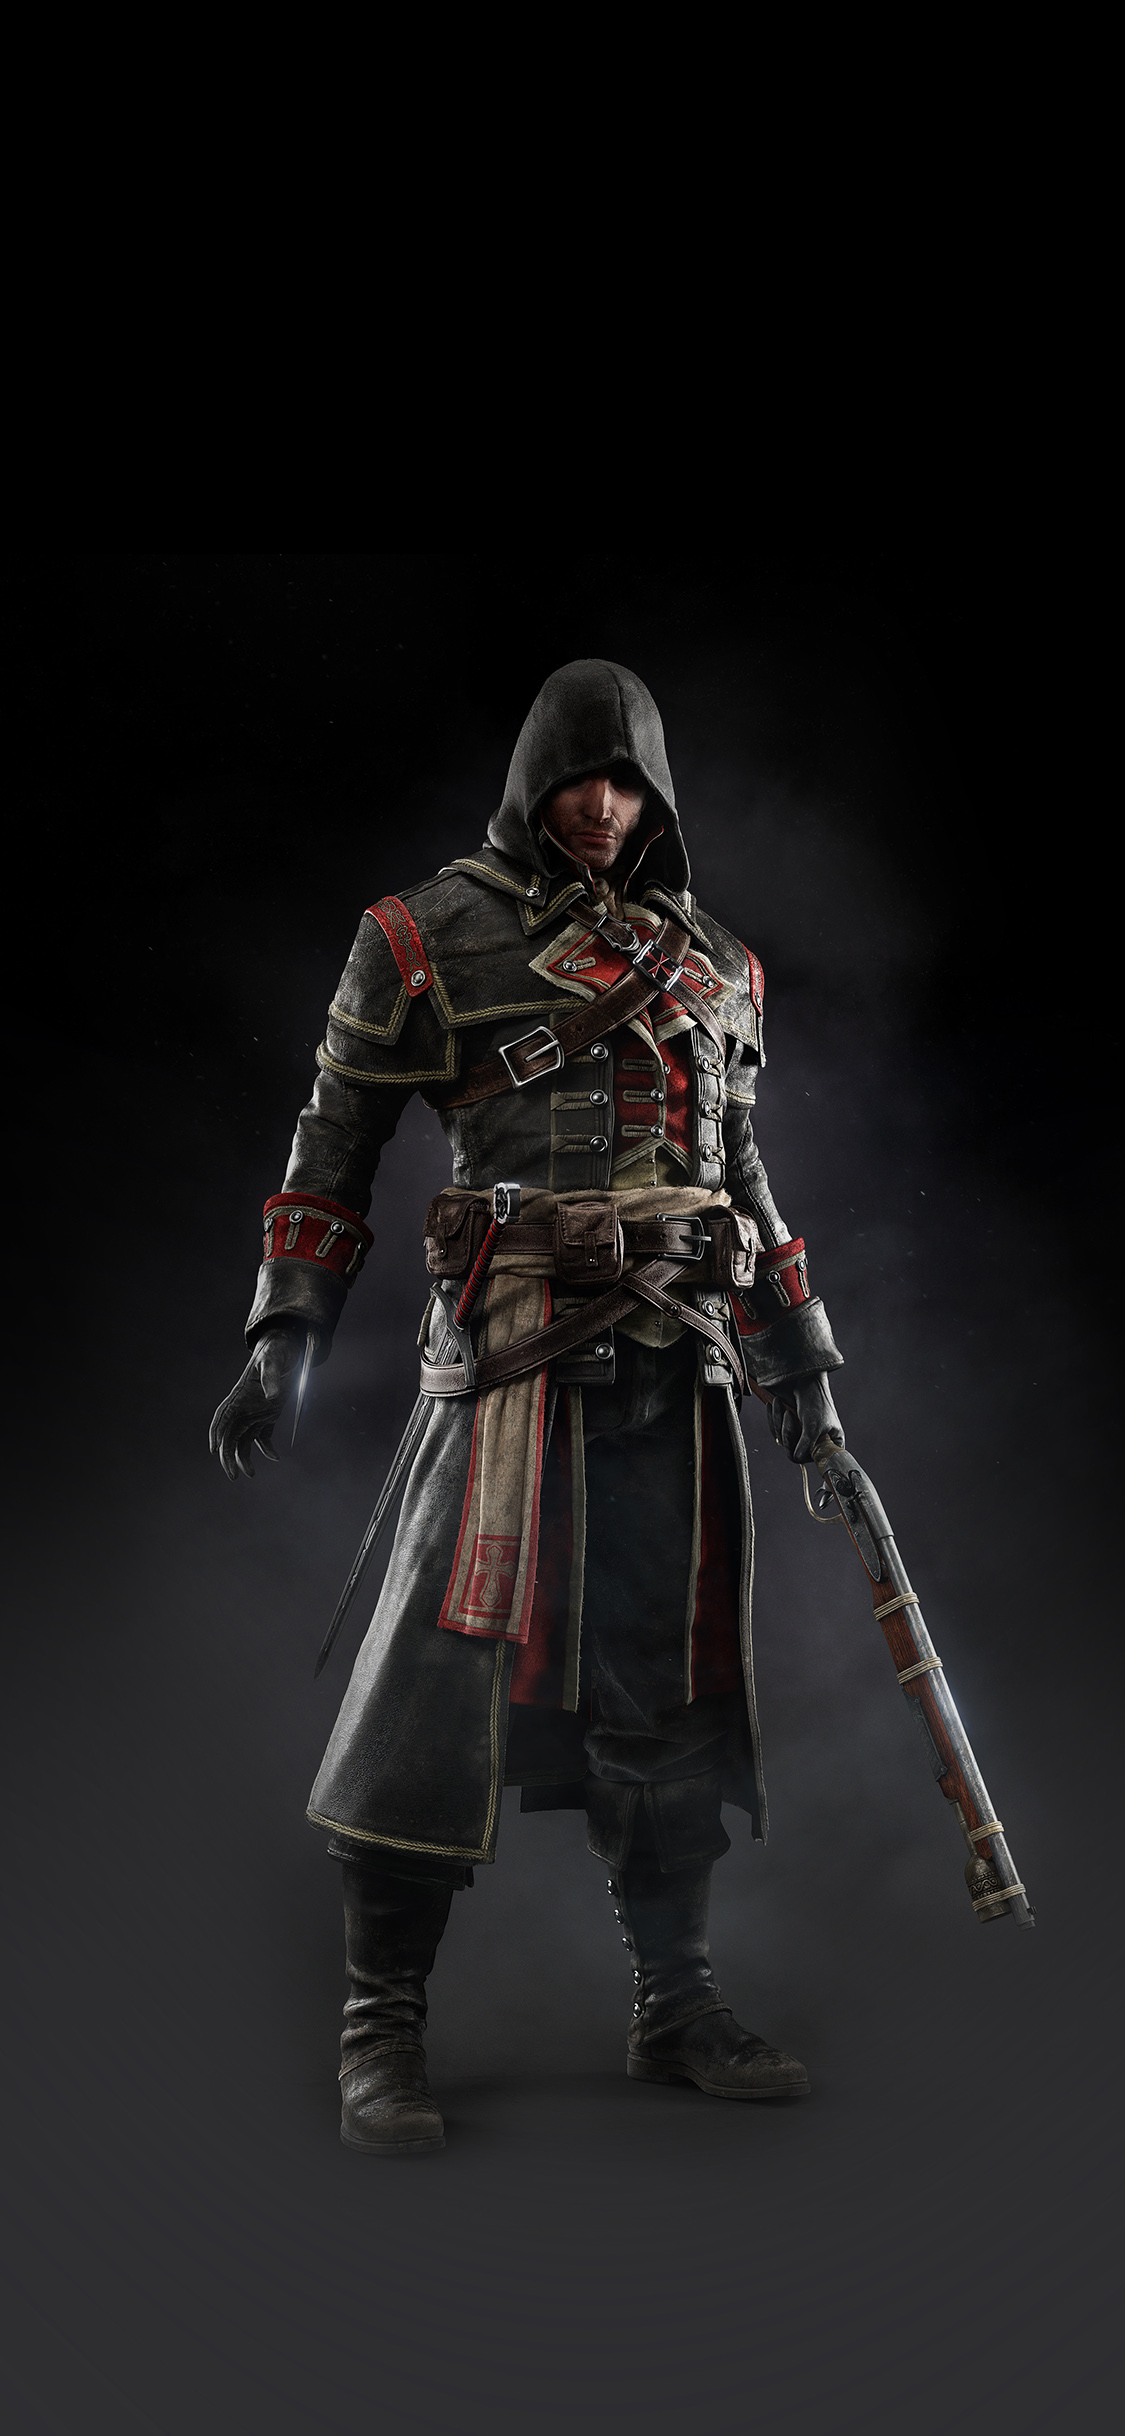 Papers Co Iphone Wallpaper Ak28 Assassins Creed Rogue Game Art